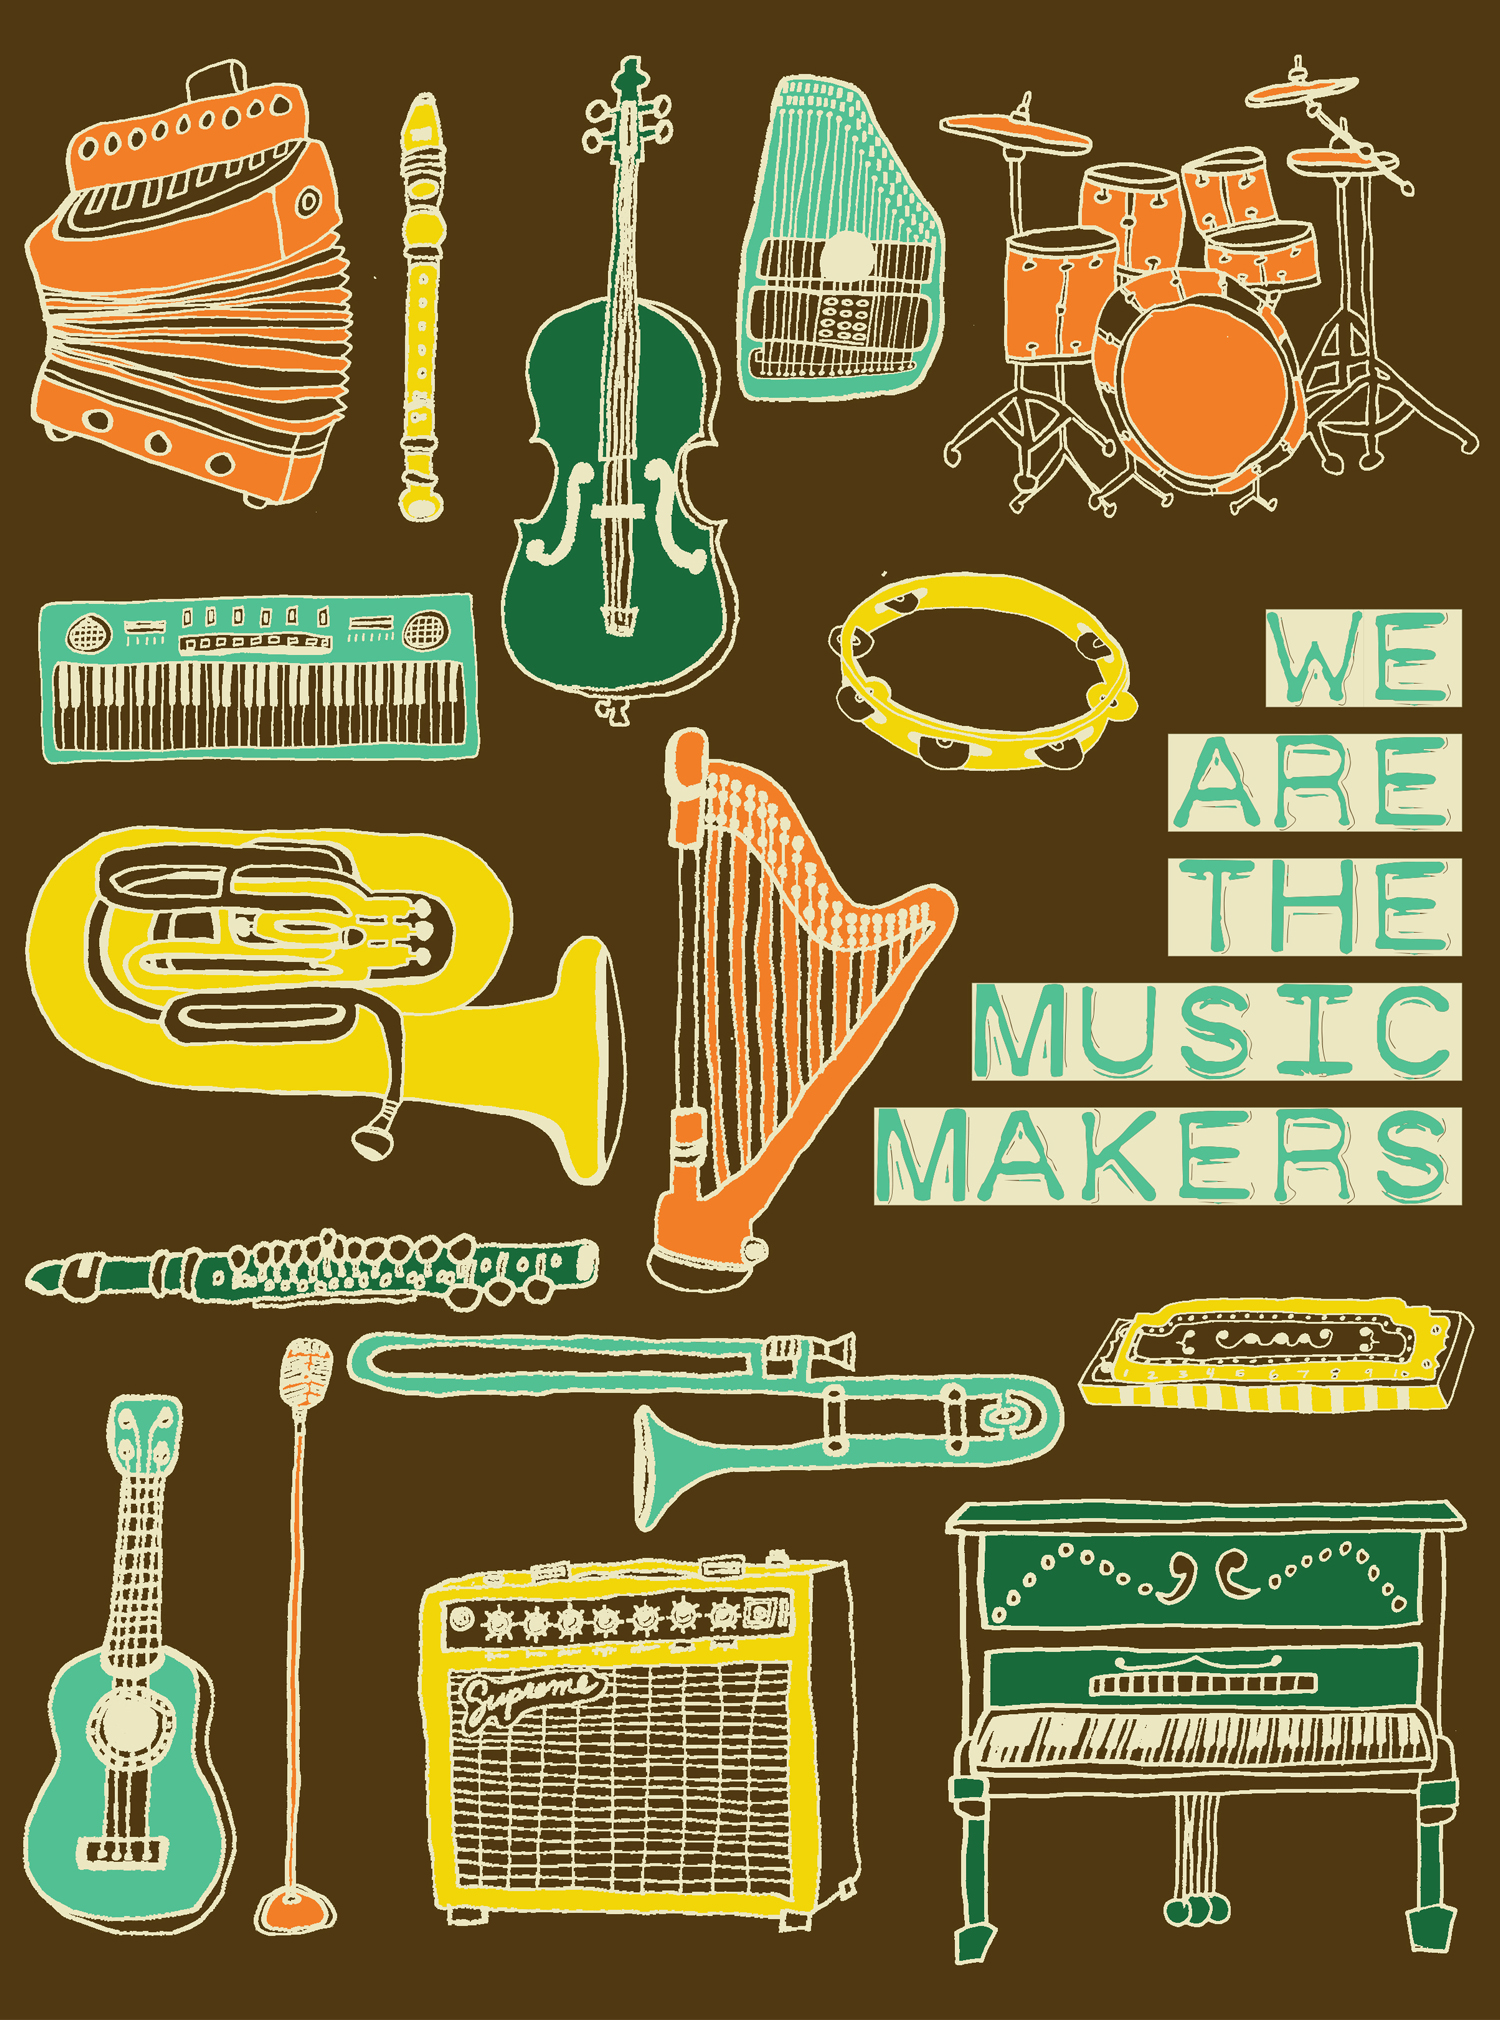 music instruments we are the music makers illustration nicole stevenson studio.jpg